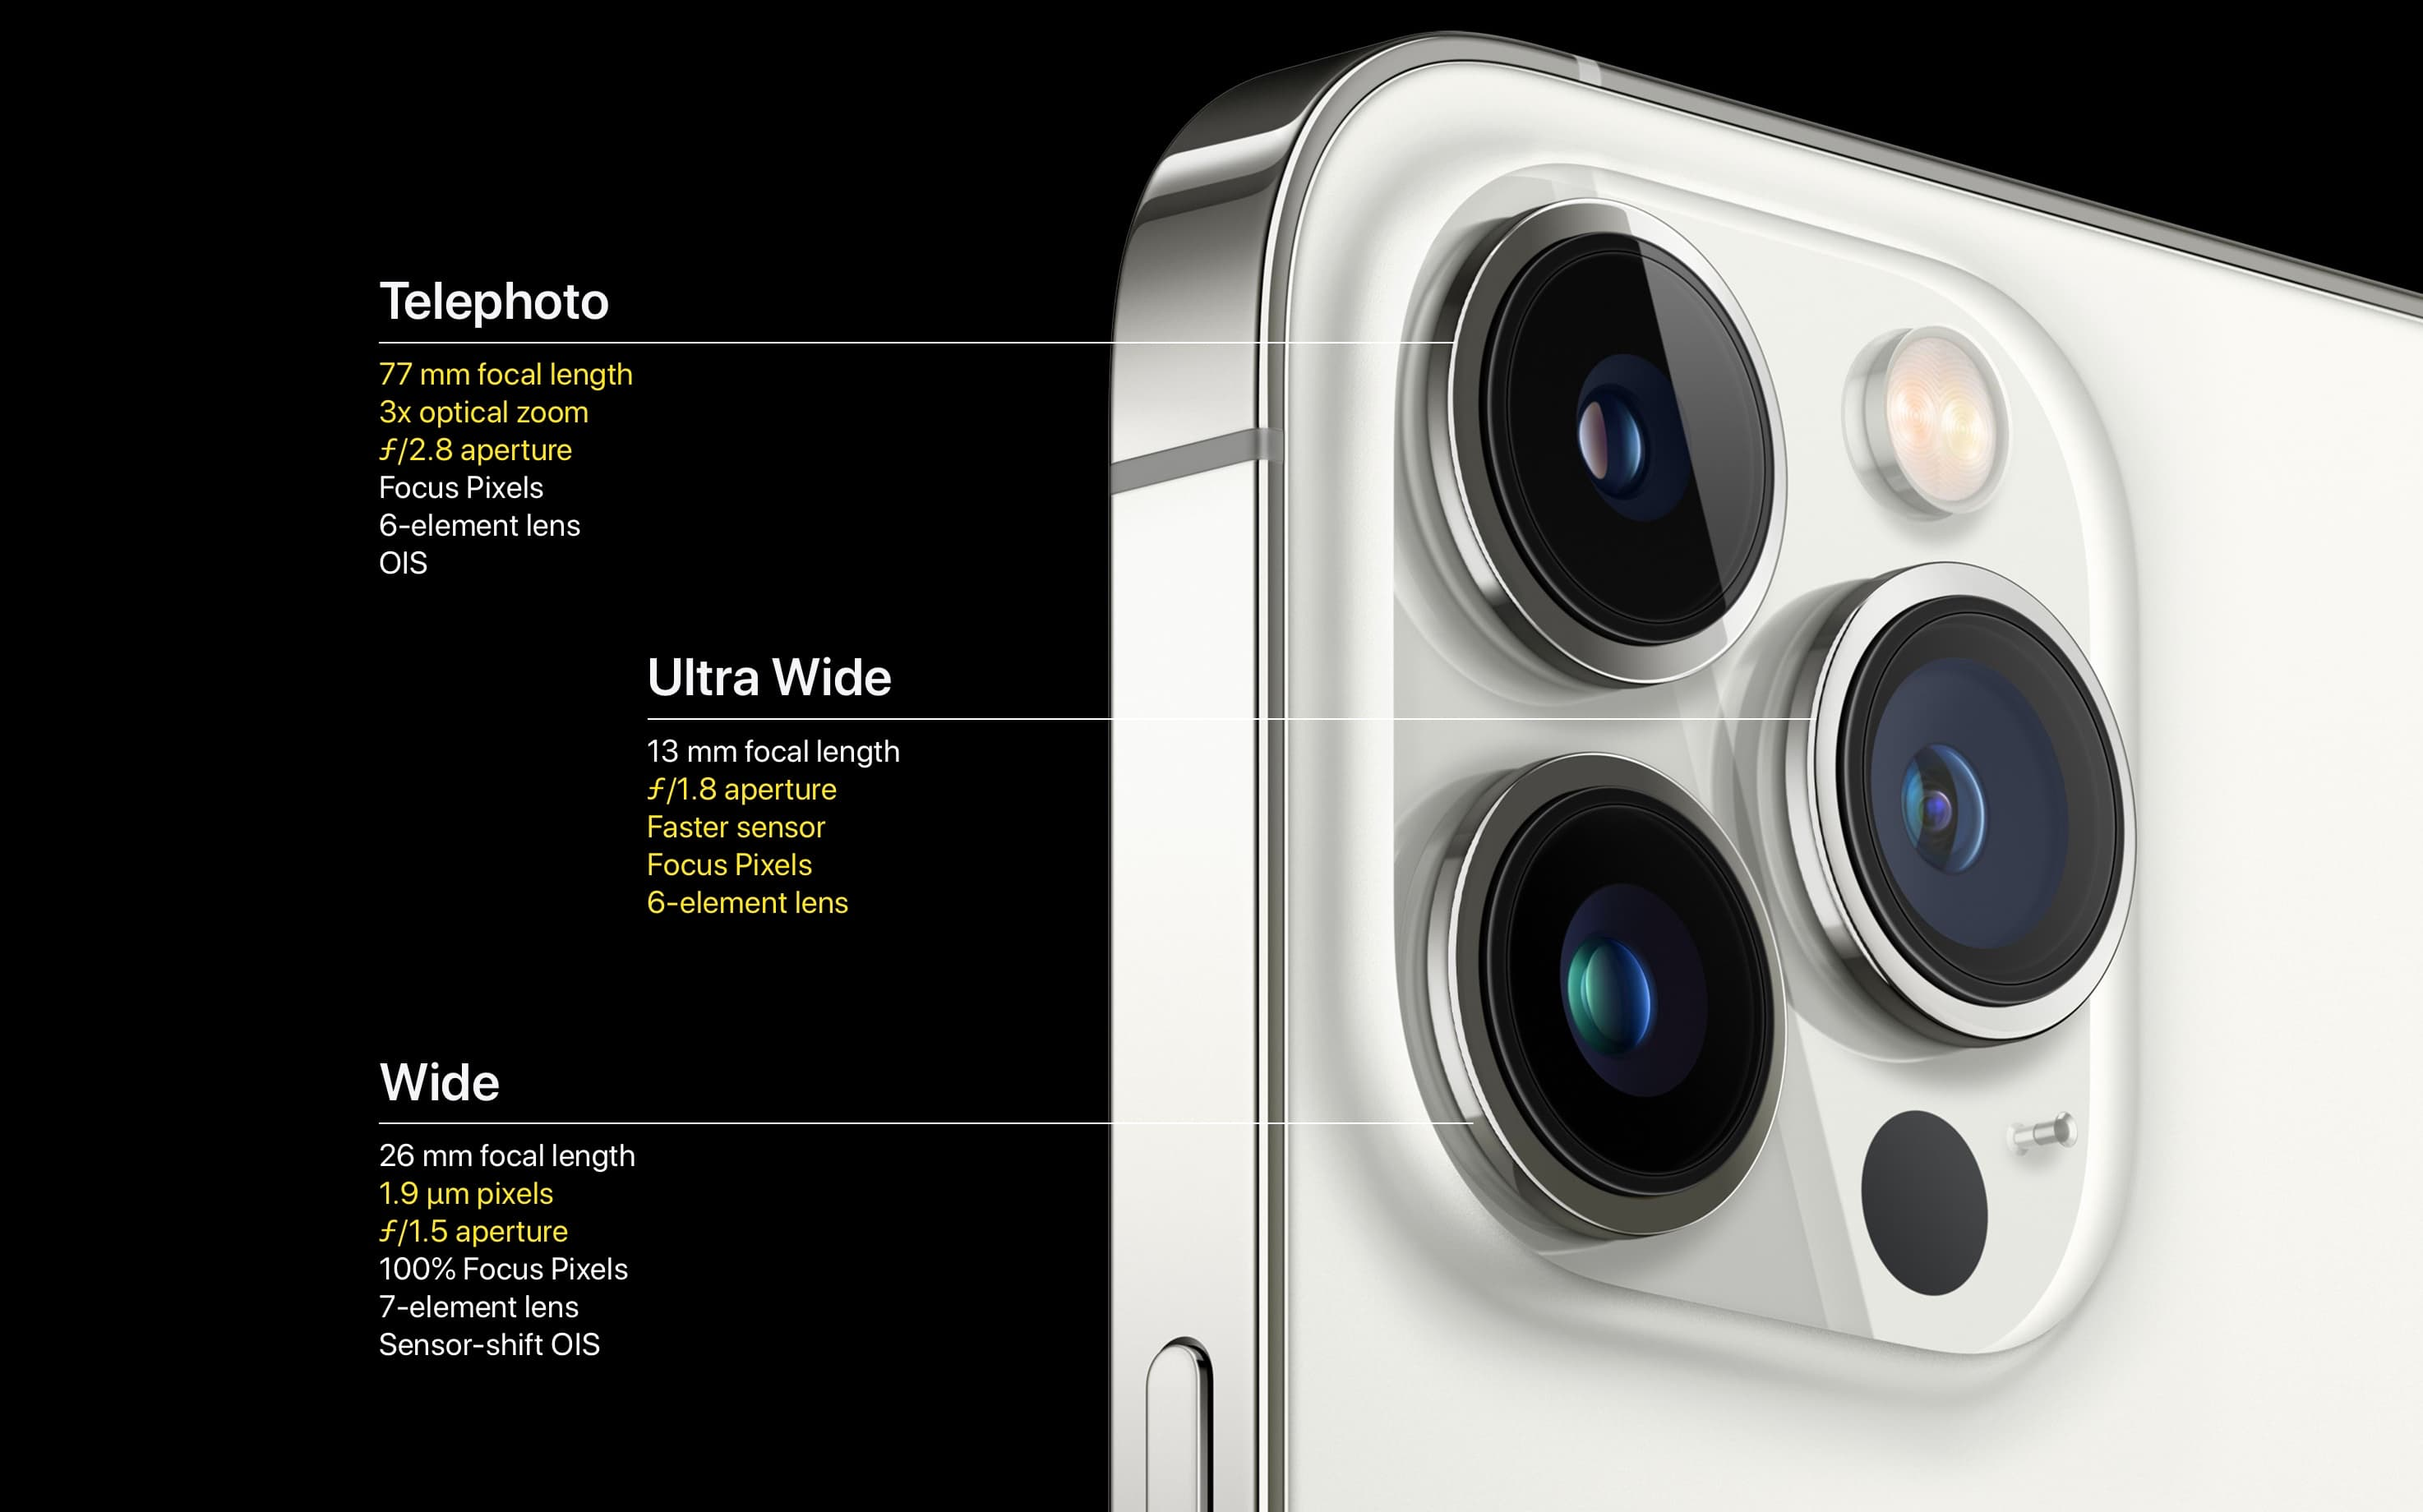 Image showing iPhone 13 camera features